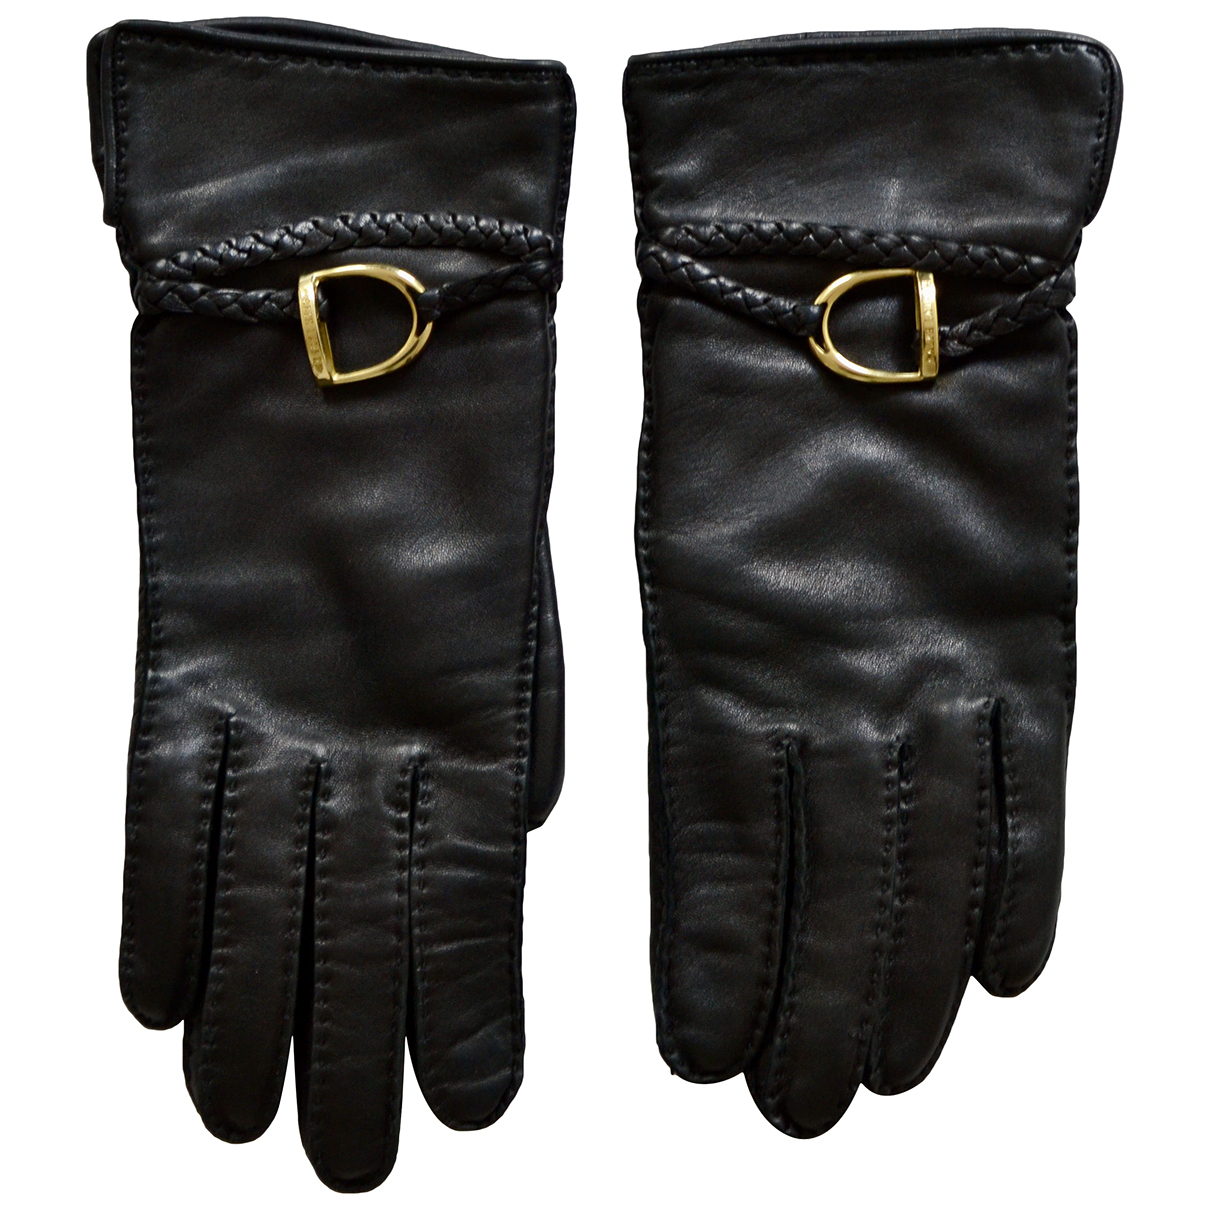 Ralph Lauren Collection N Black Leather Gloves for Women 6.5 Inches